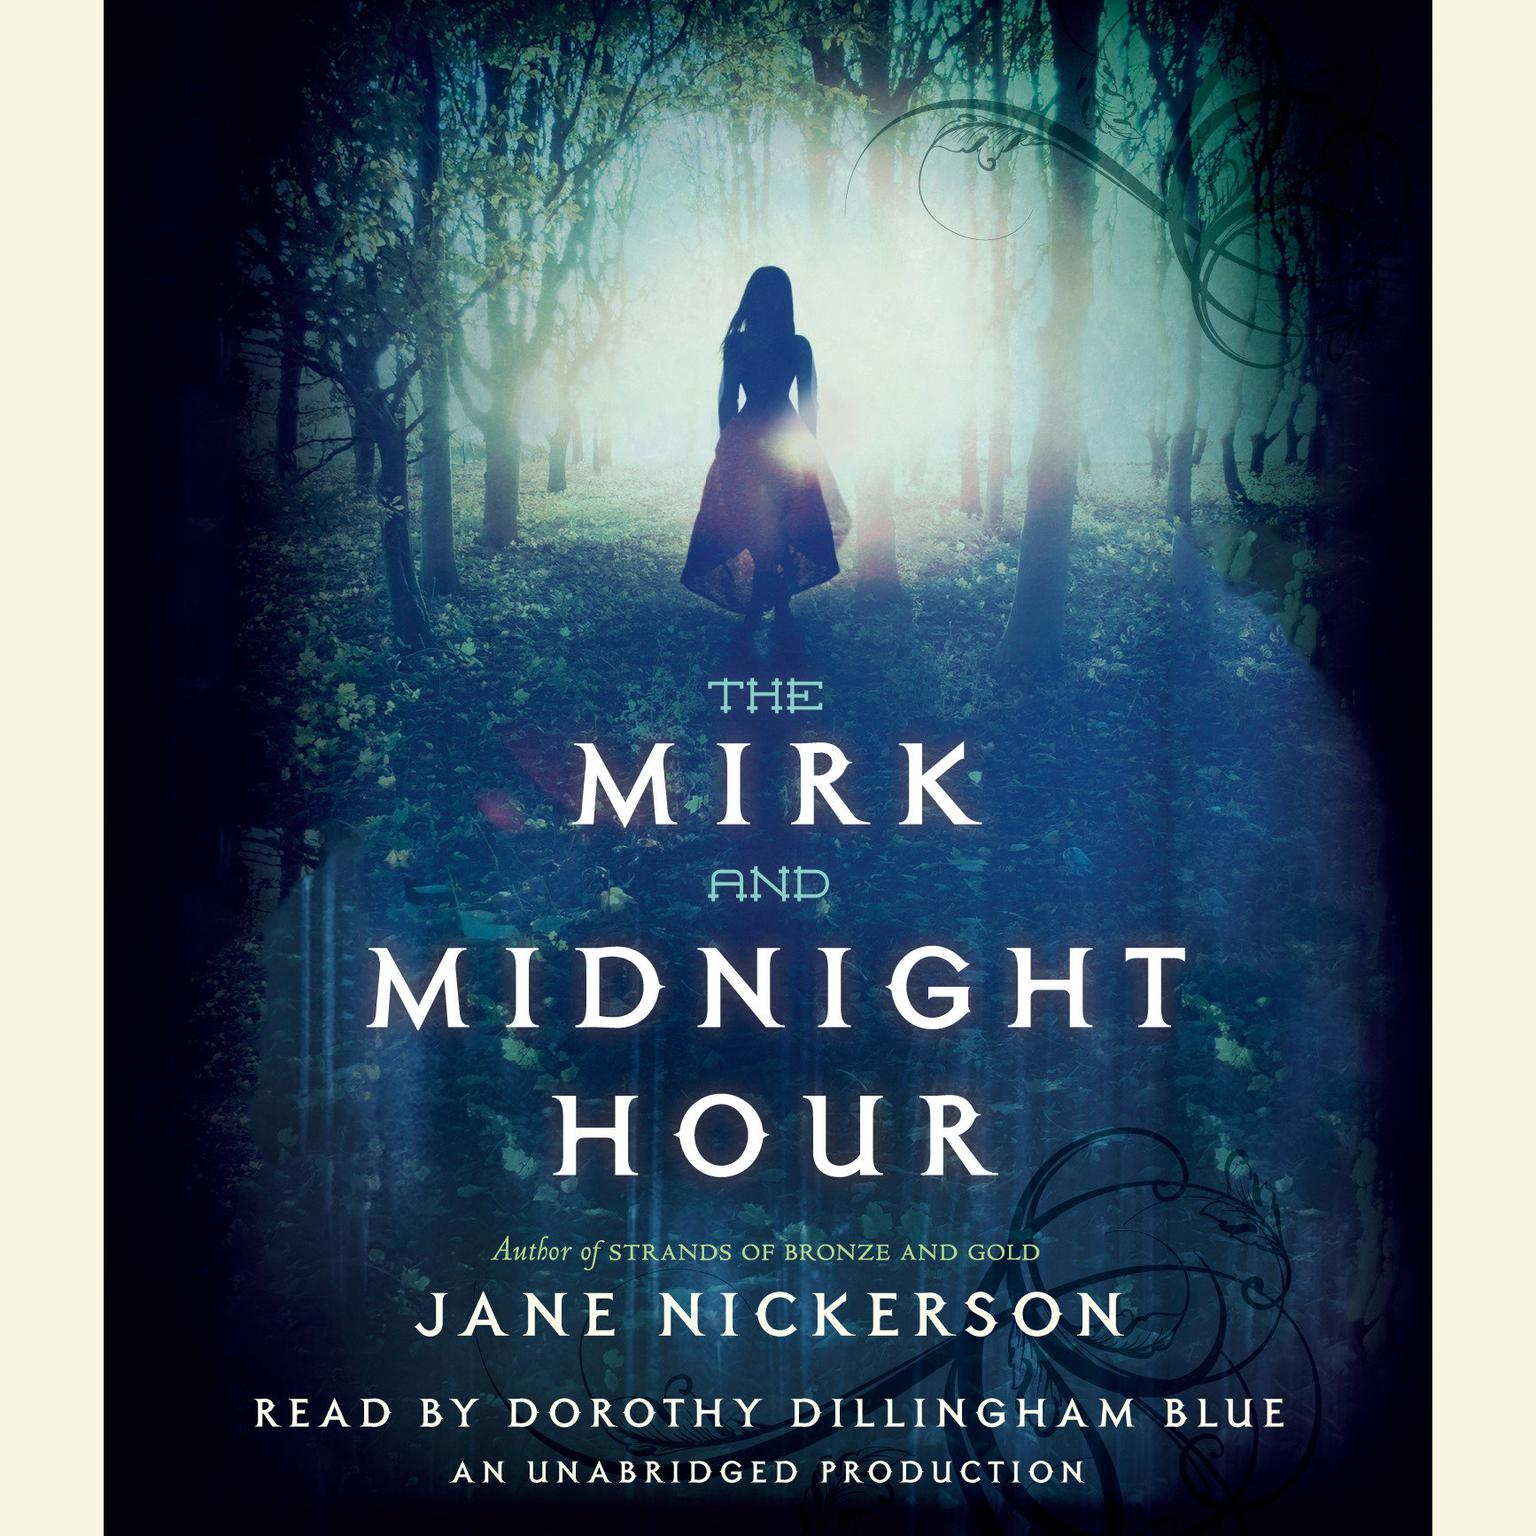 Printable The Mirk and Midnight Hour Audiobook Cover Art